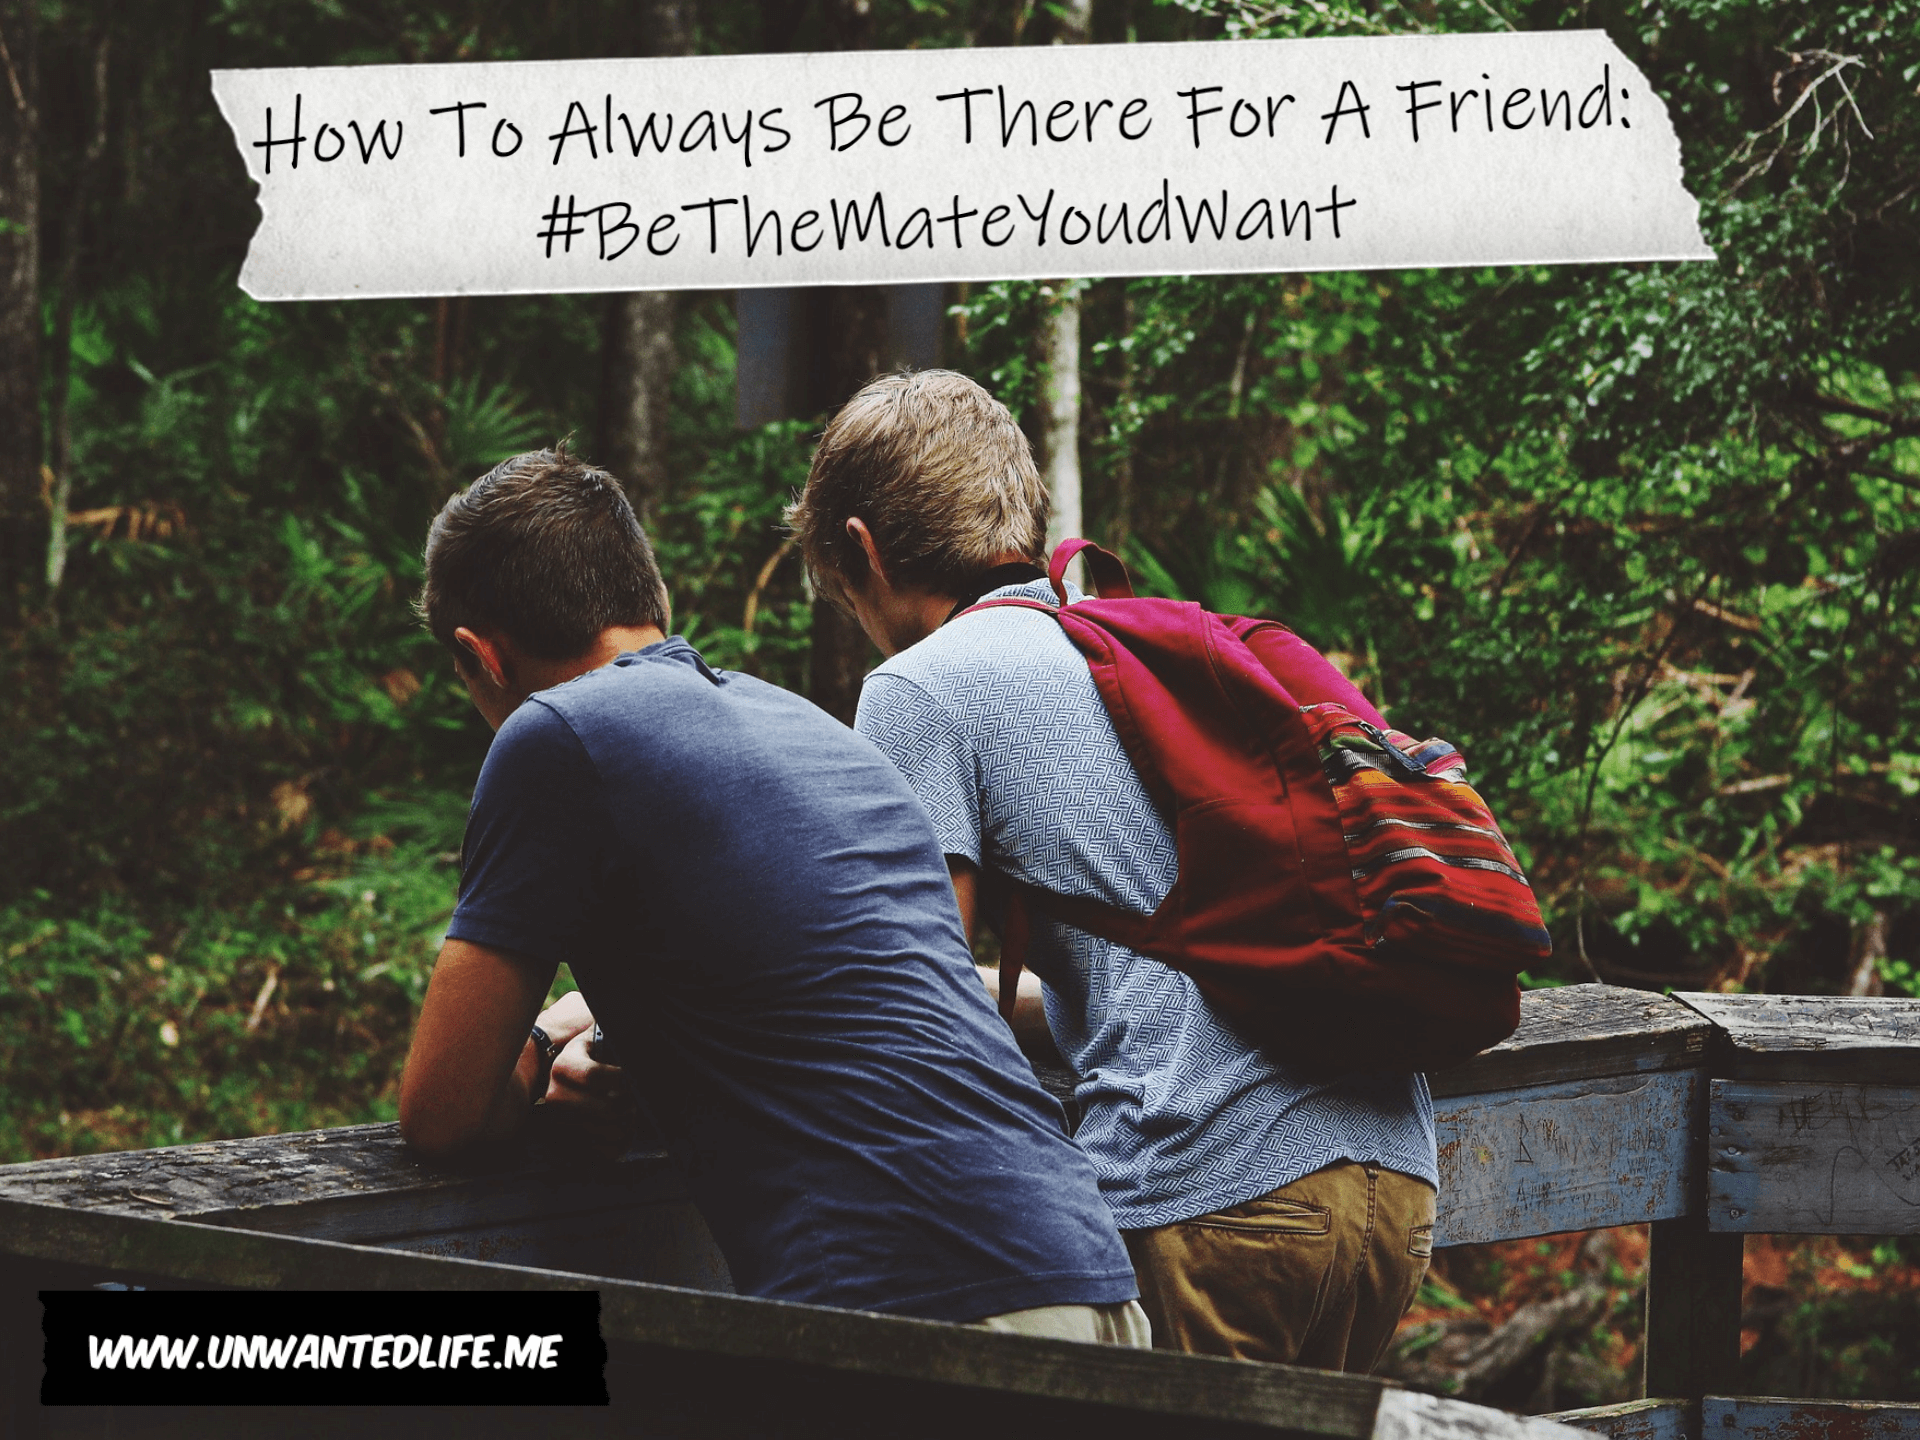 A photo of two guys at a viewing platform overlooking a forest area with the article title - How To Always Be There For A Friend: #BeTheMateYoudWant - across the top of the image